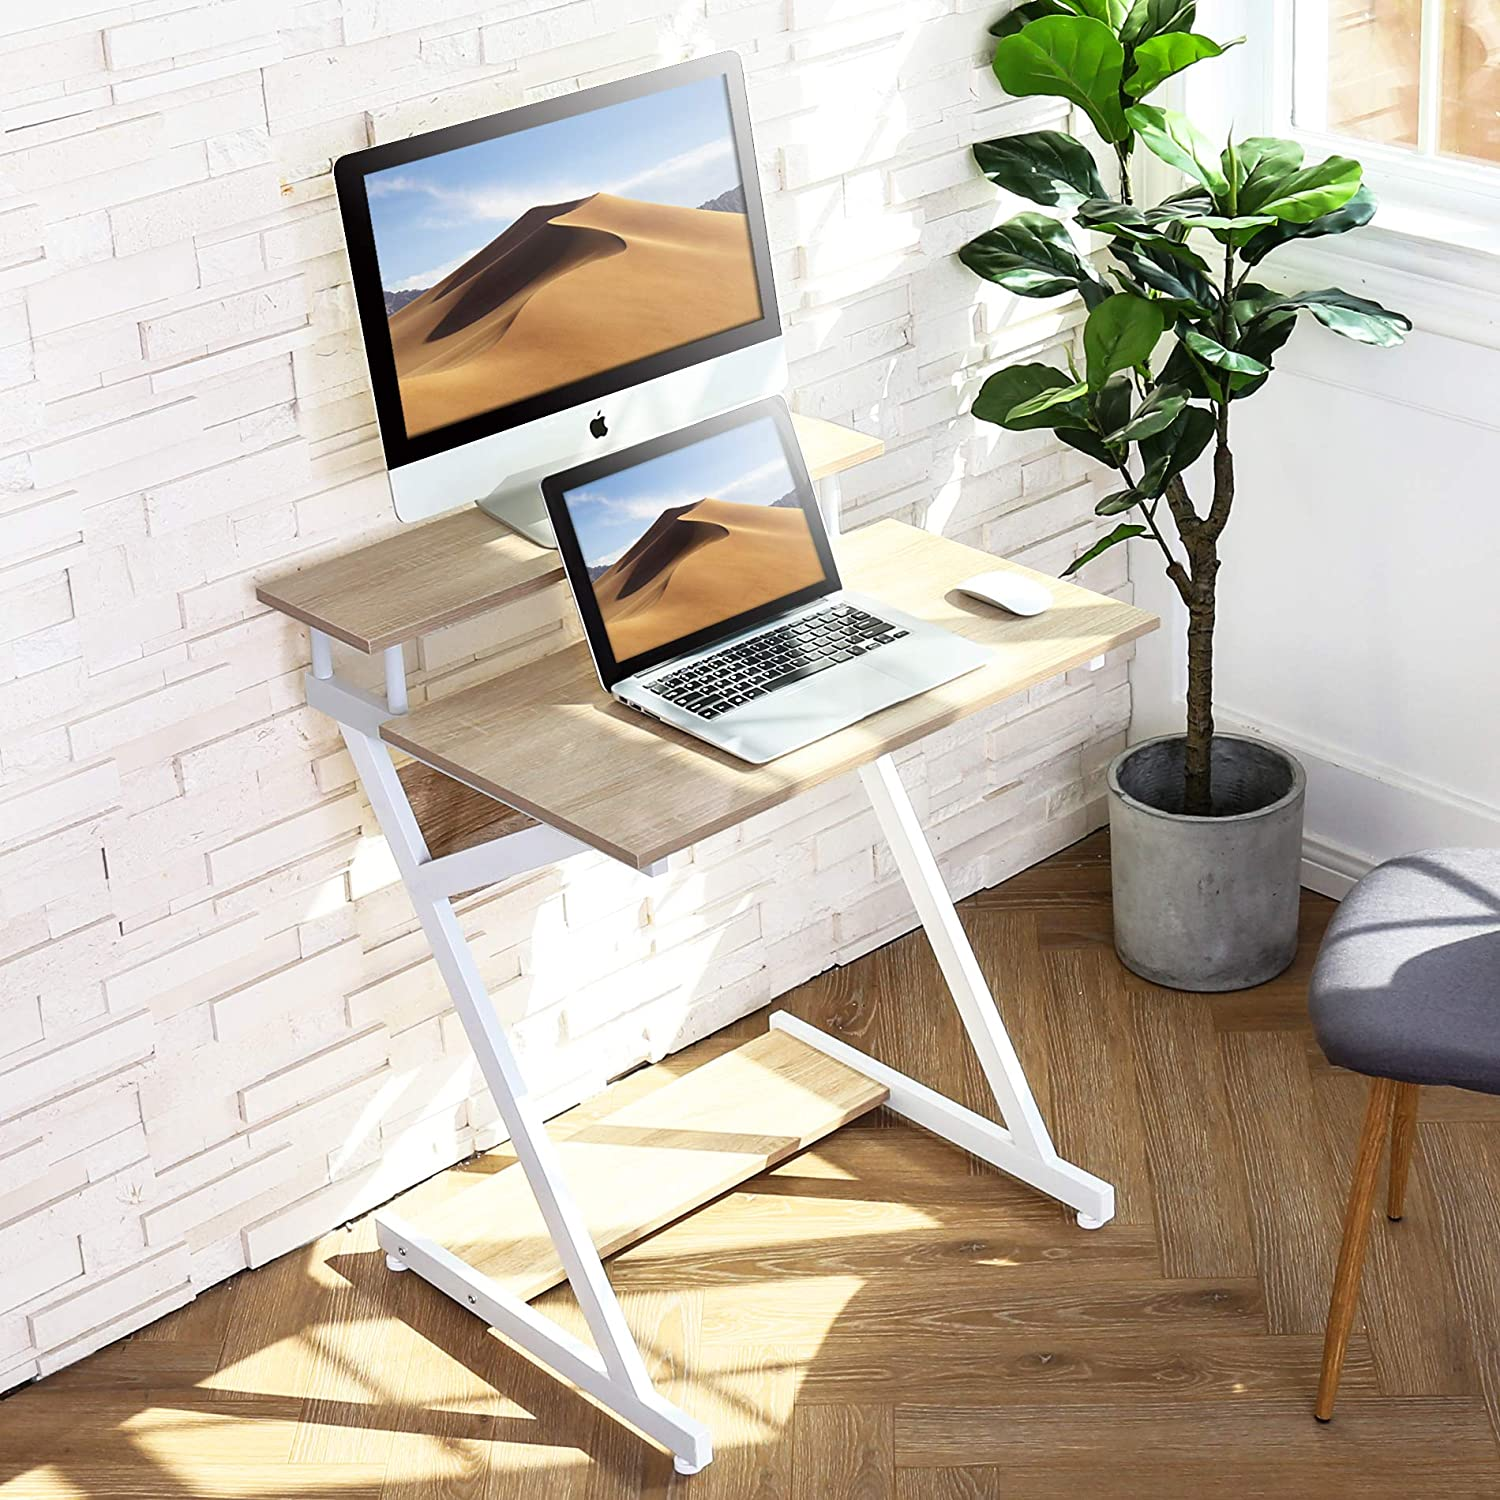 FITUEYES Computer Desk with Keyboard Wood White Z-Shaped Writing Table Workstation for Home Office 70x60x84cm CD307003WW